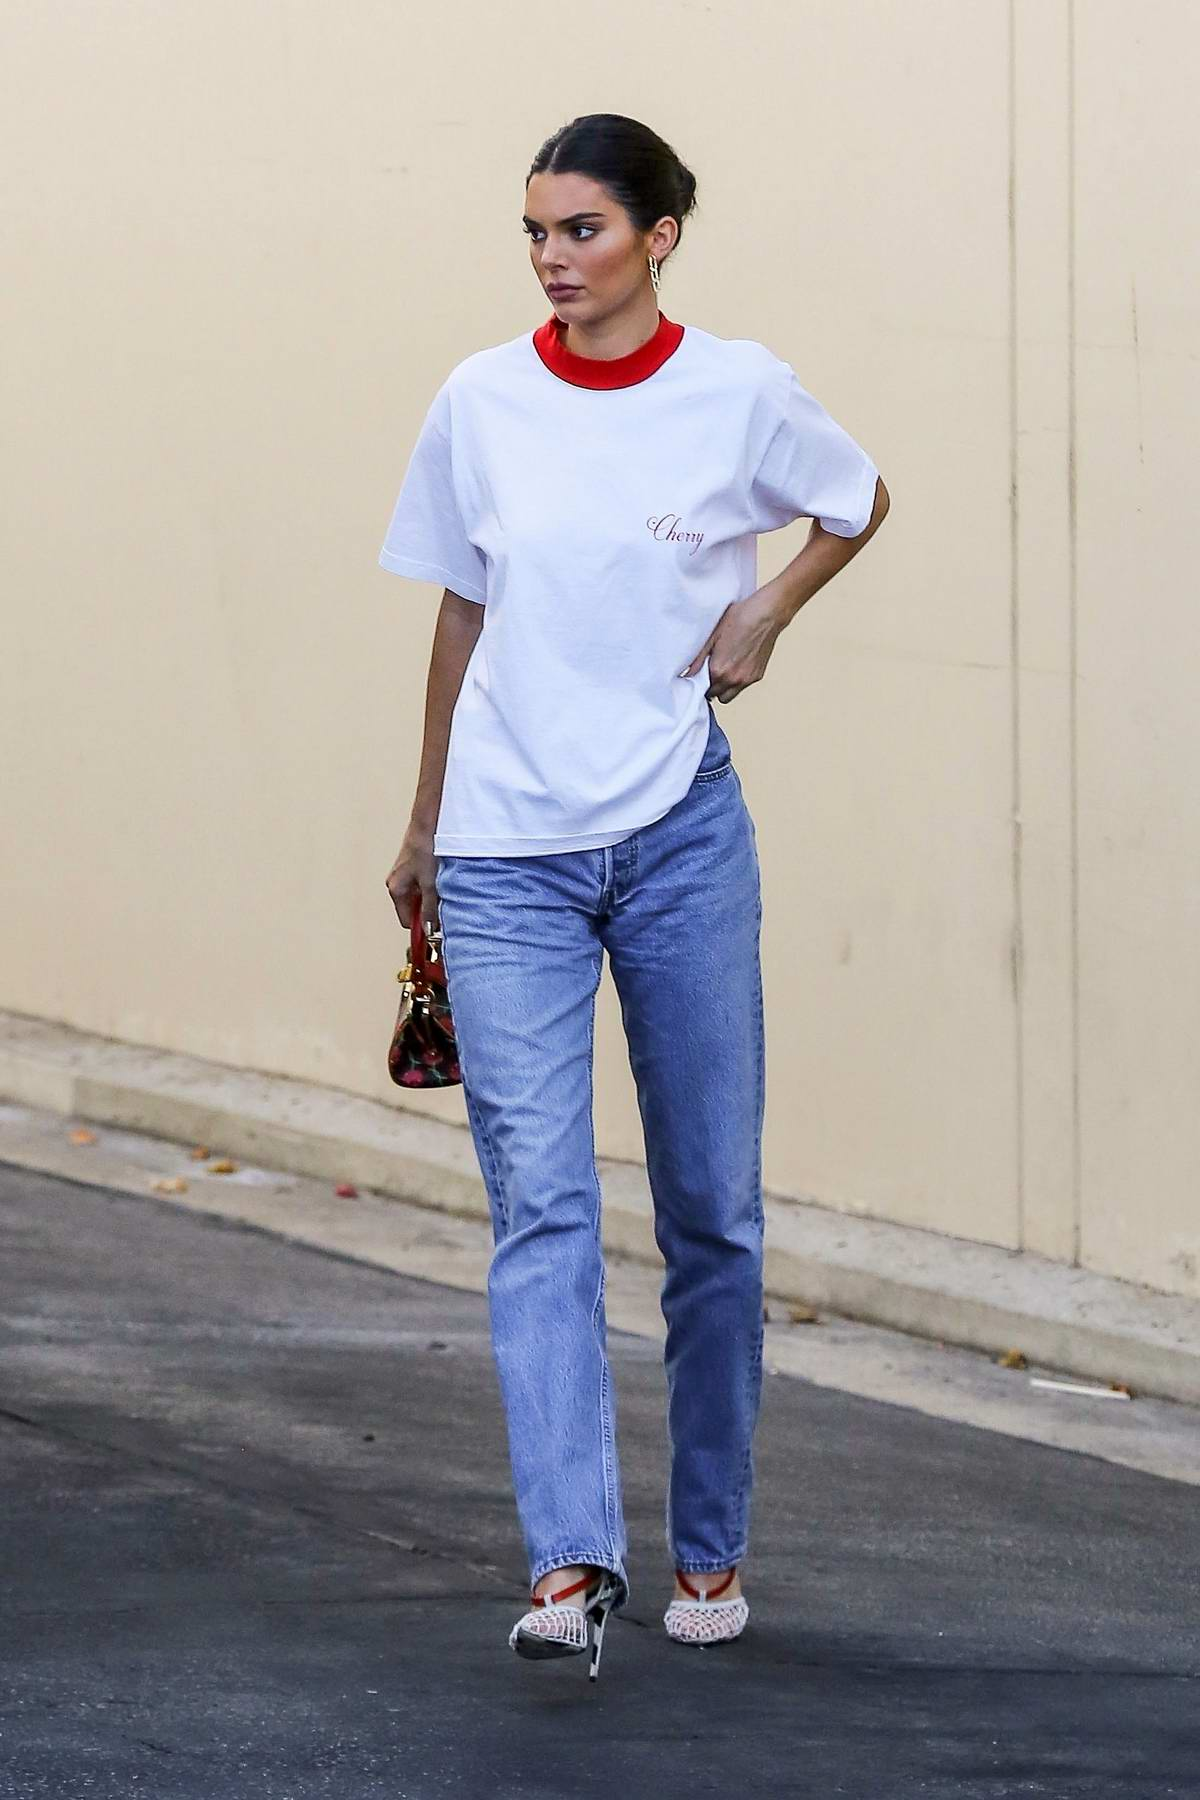 f9bff34d090 Kendall Jenner keeps it casual with a white top and blue jeans as she leaves  the